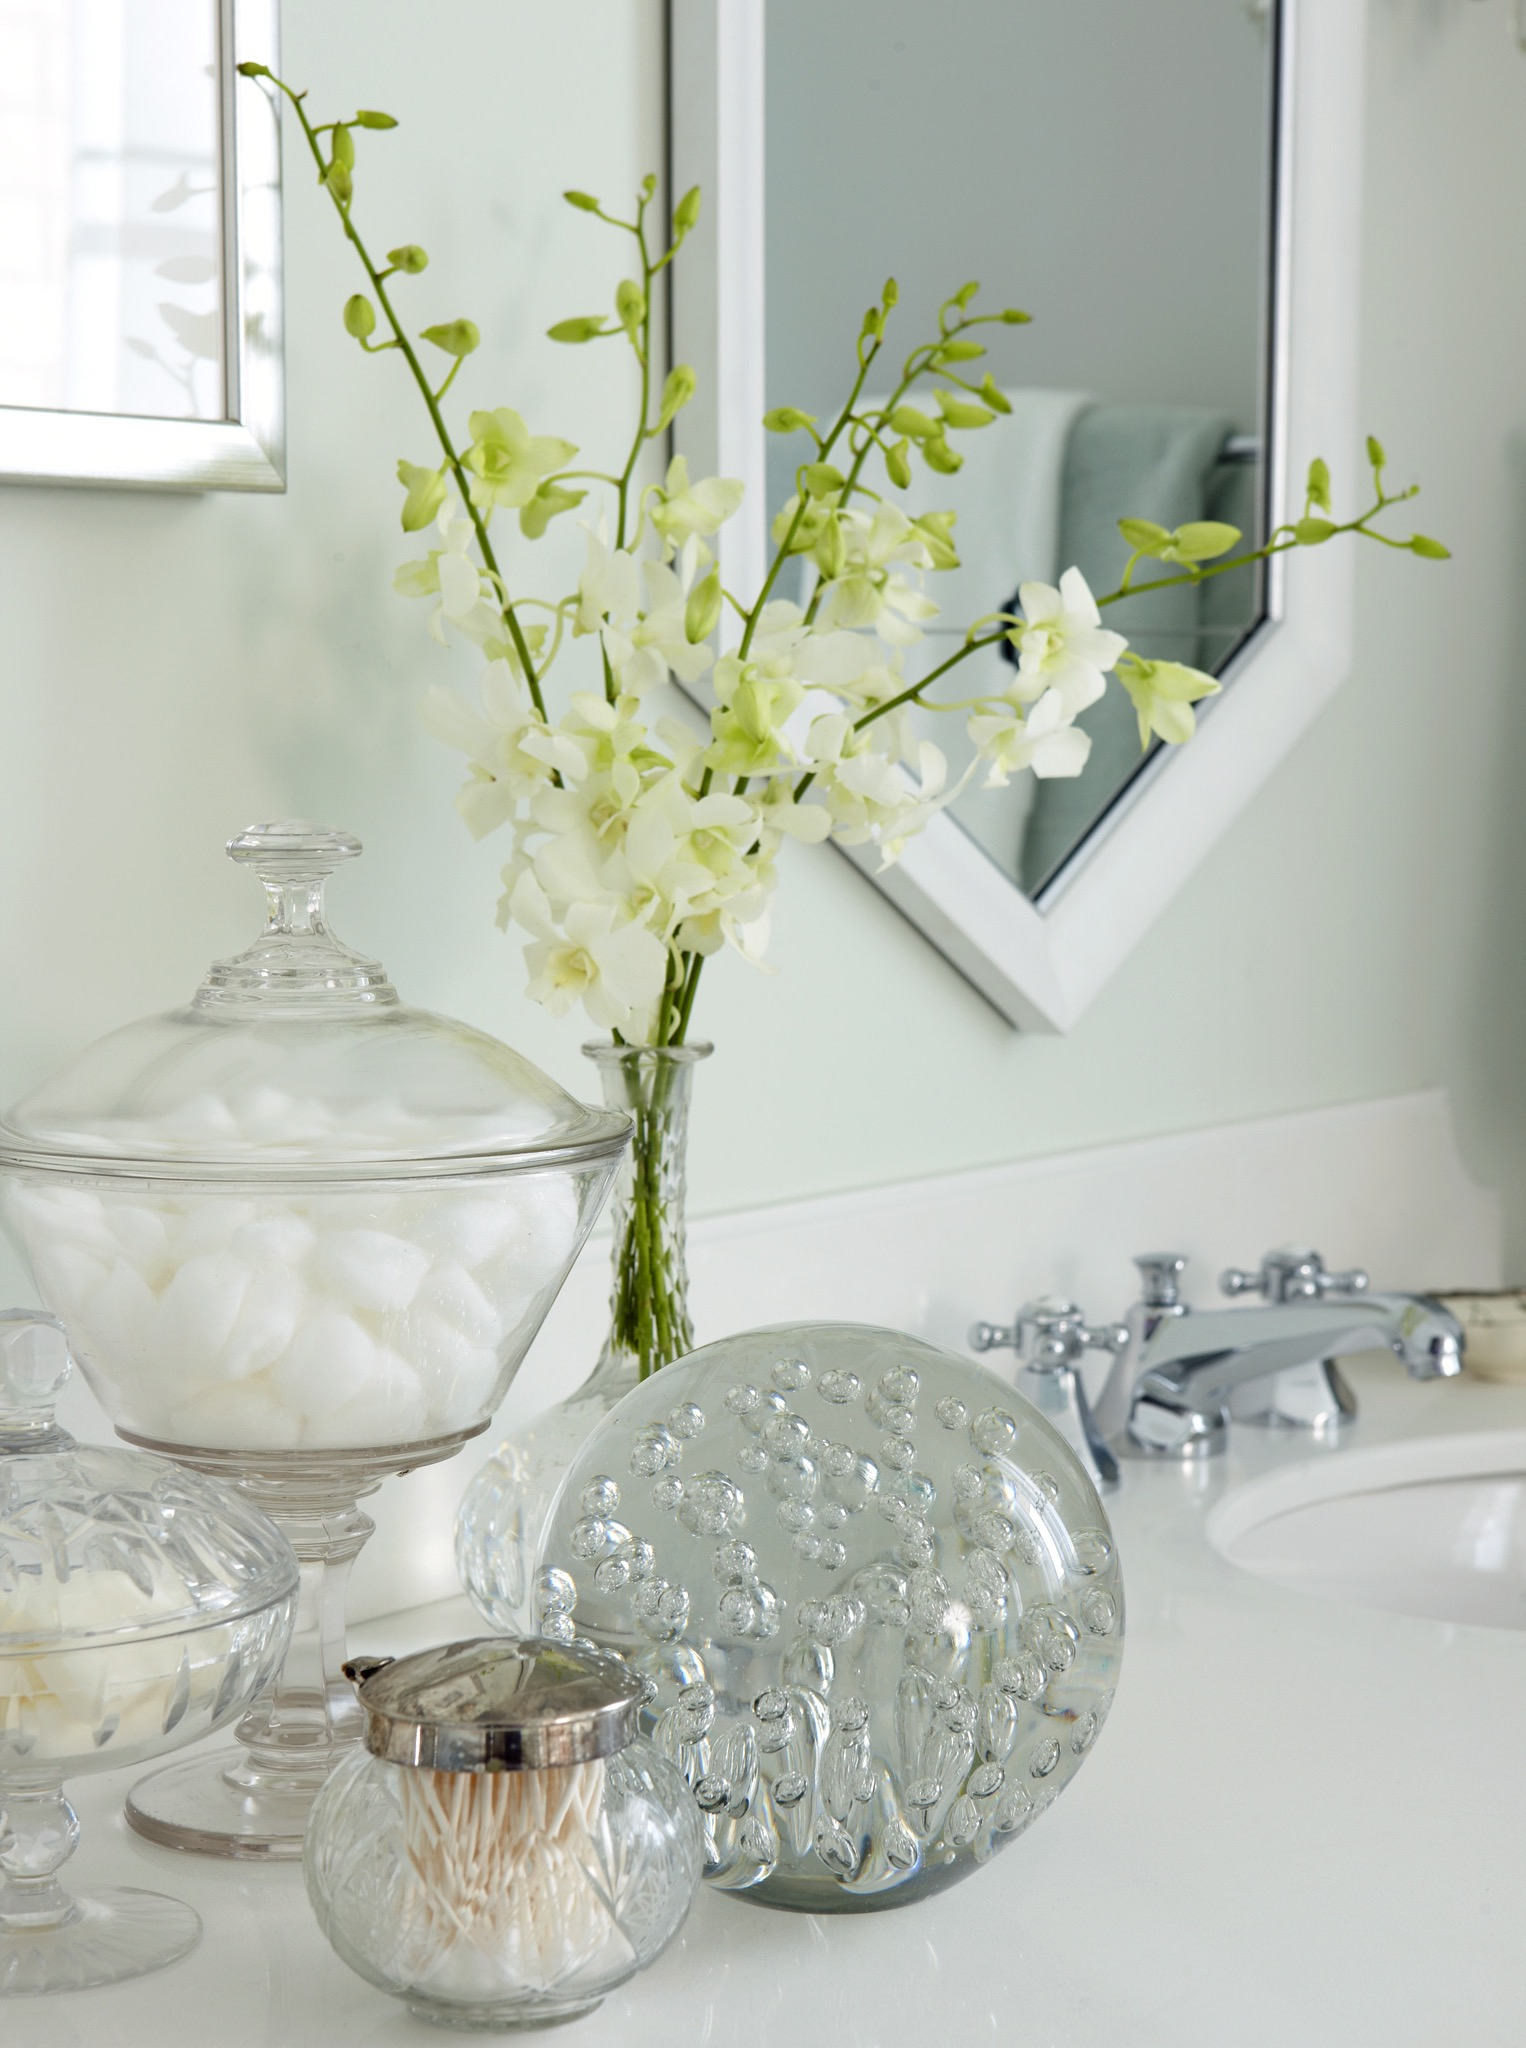 Decorative Glass Jars And Flowers As Modern Bathroom Accessories (View 4 of 14)